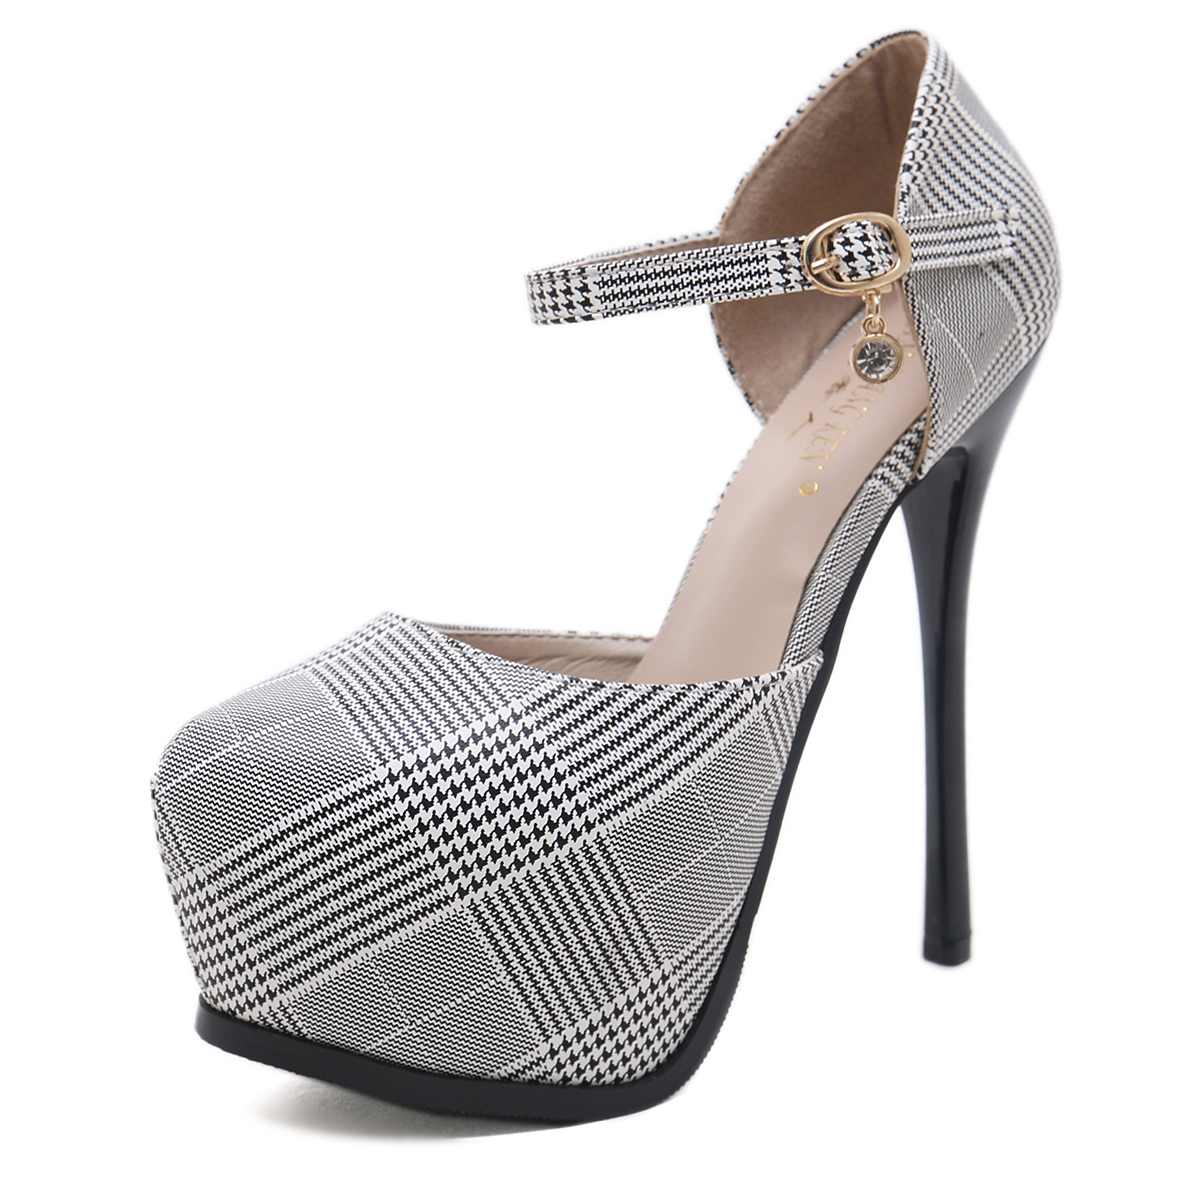 night club new 14 cm high heel shoes with platform grey color's main photo